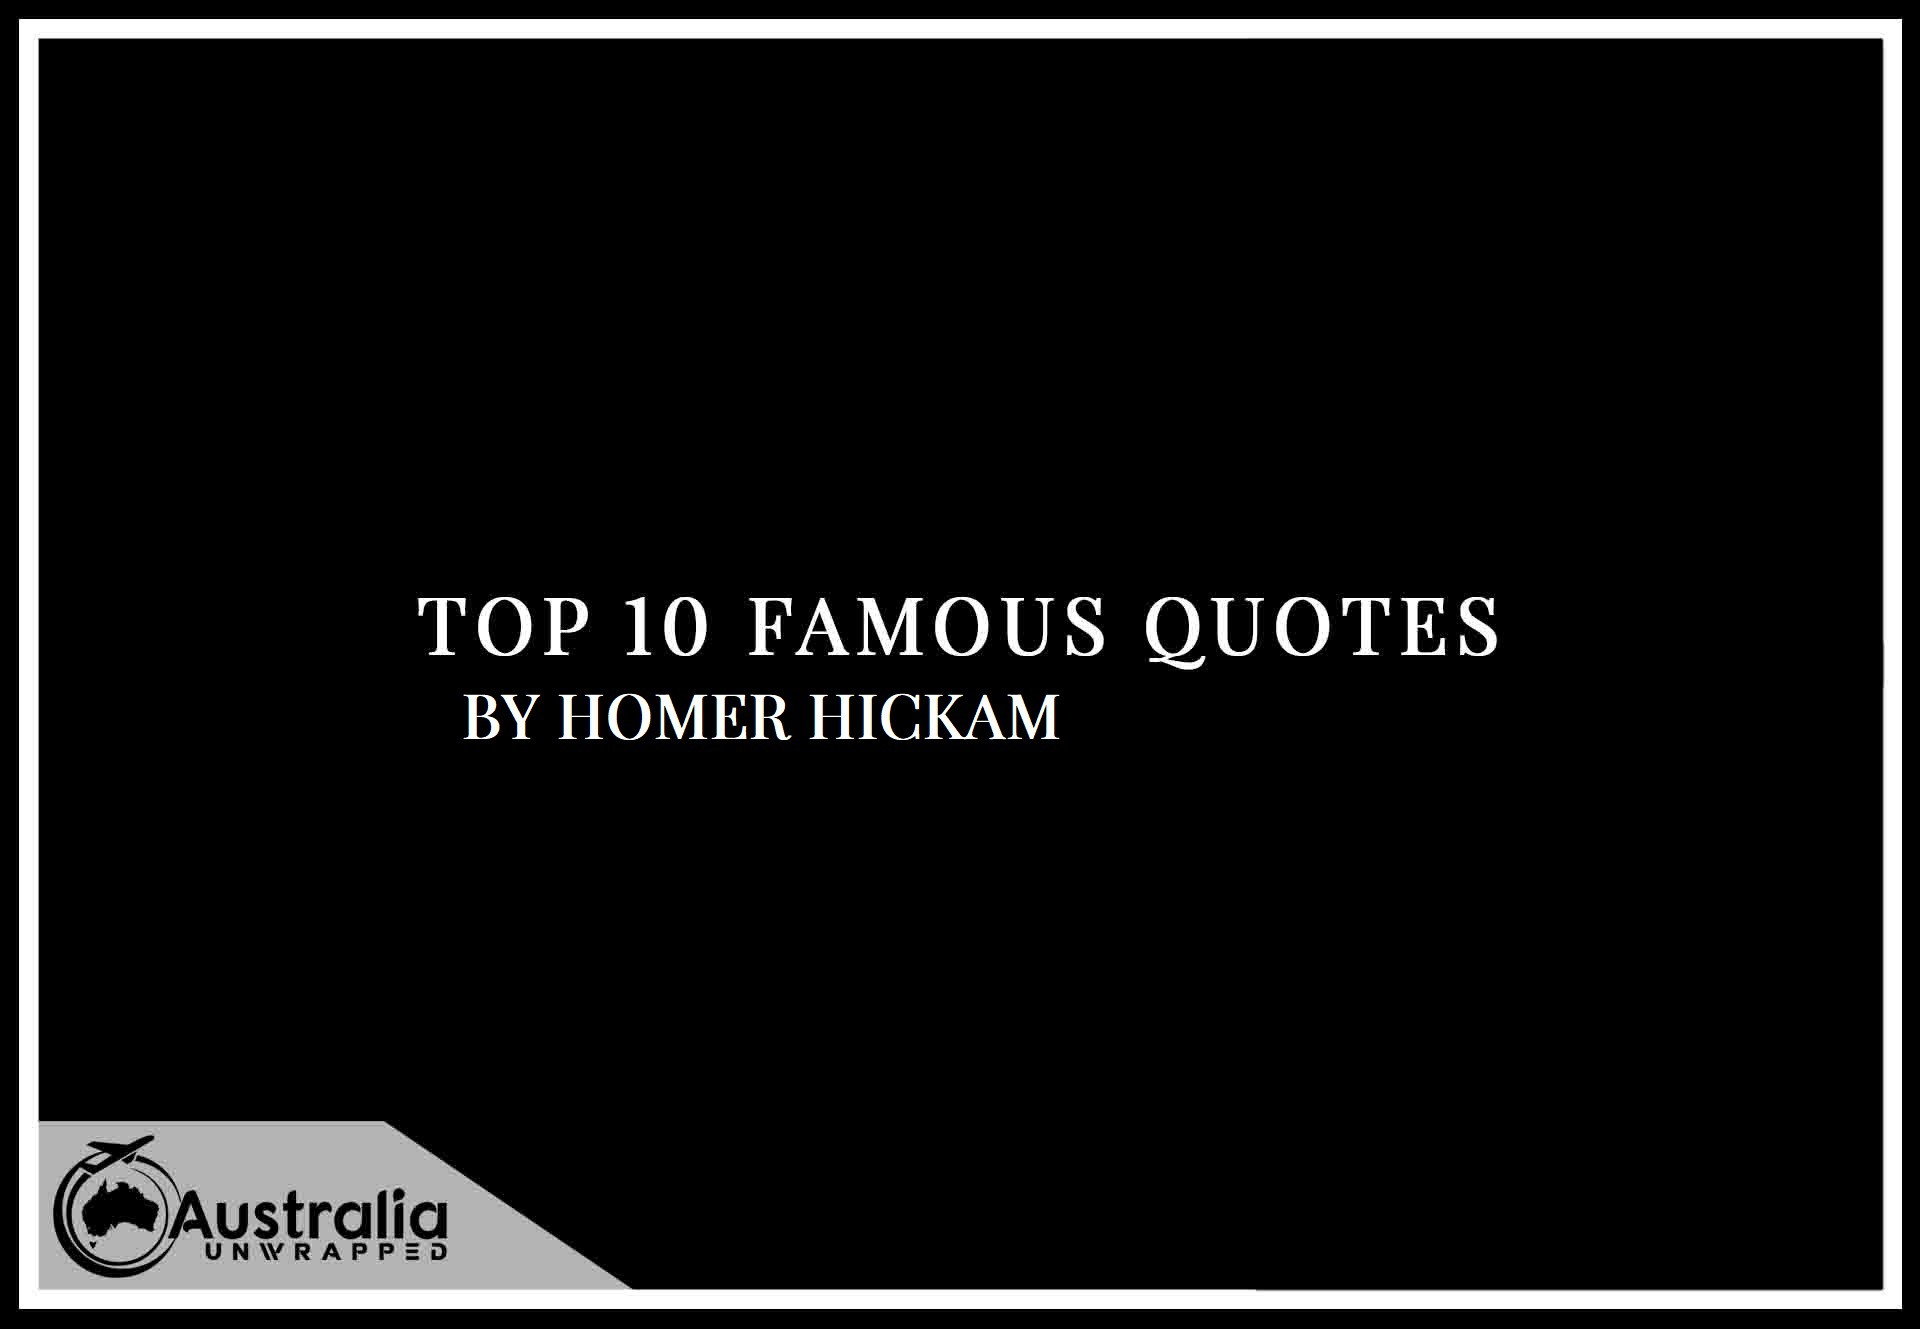 Top 10 Famous Quotes by Author Homer Hickam